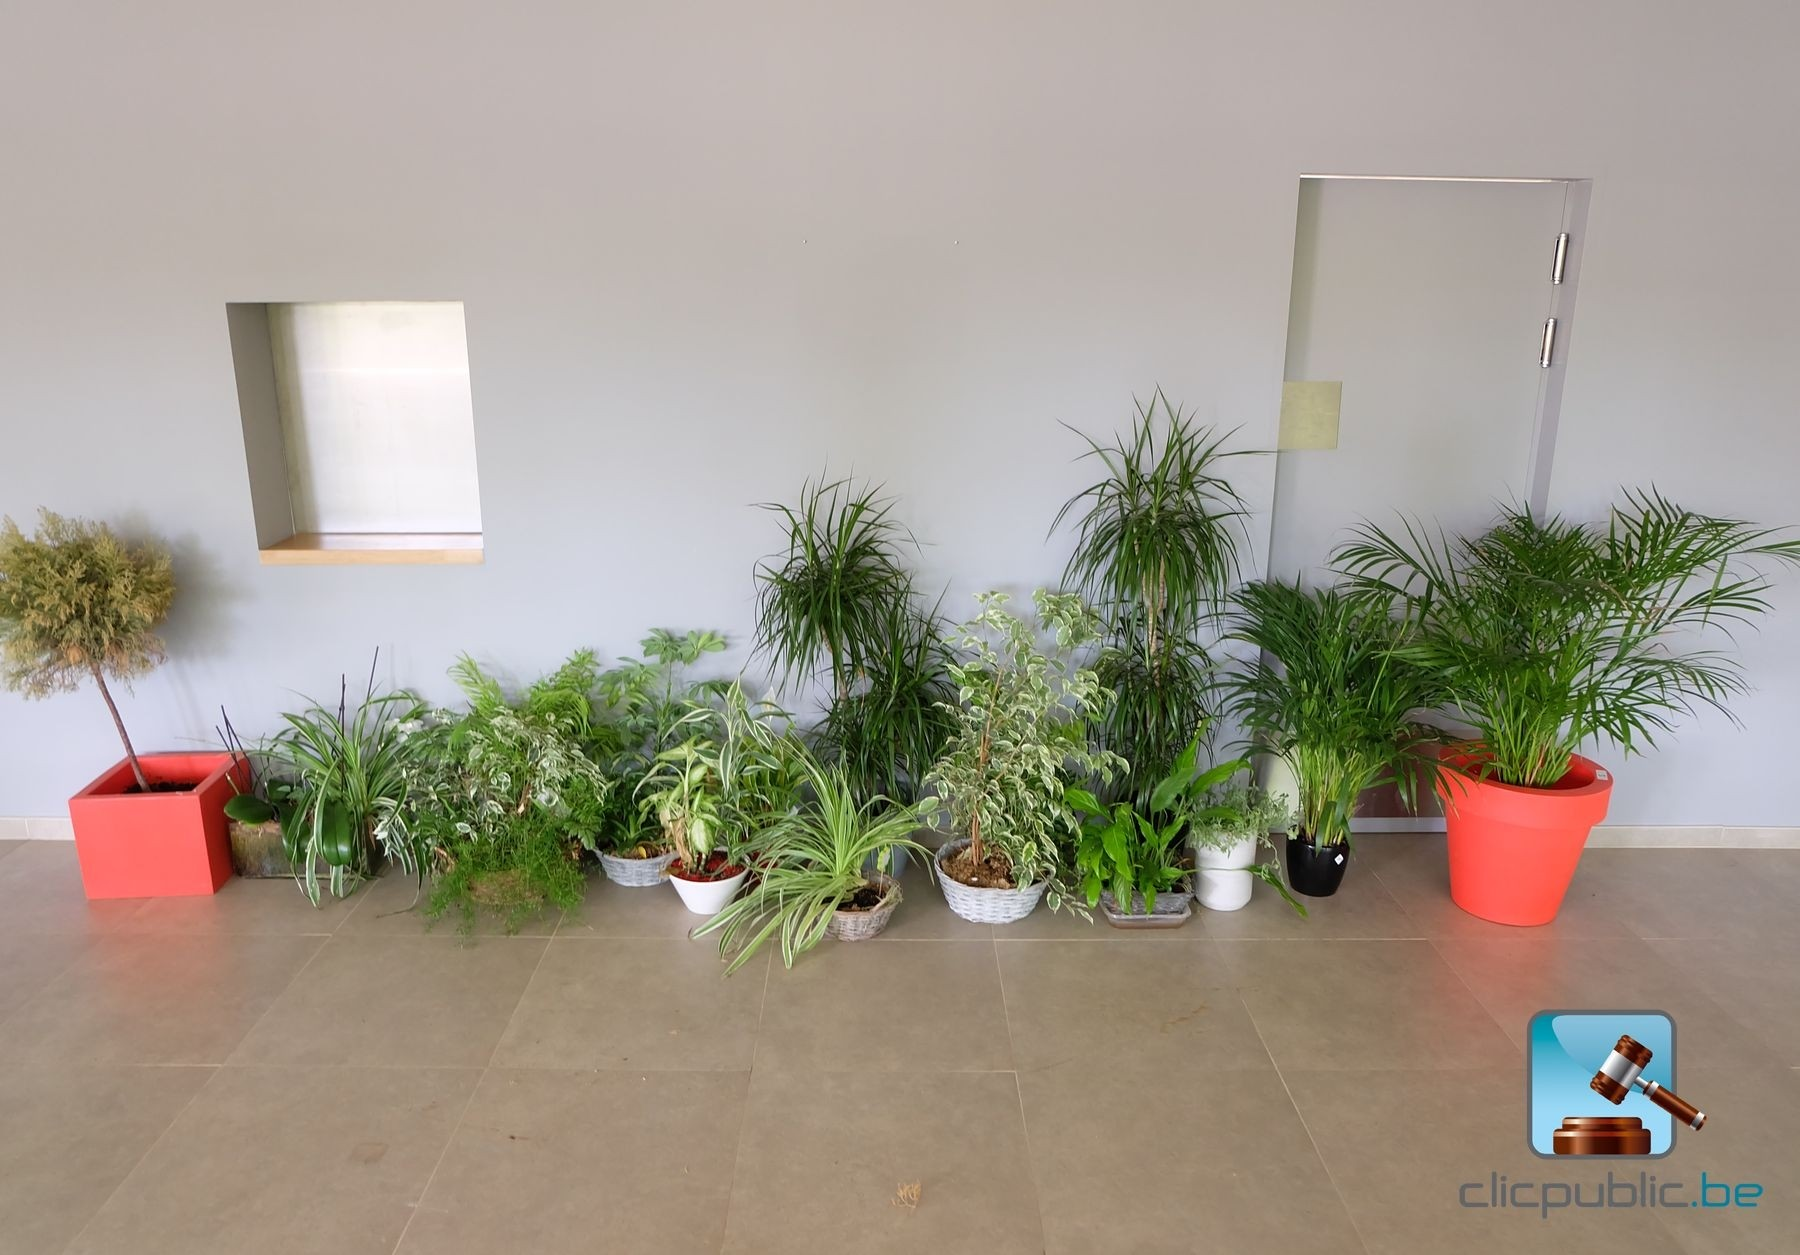 Lot de 14 plantes vivantes d 39 int rieur ref 5 vendre for Vente de plantes sur internet